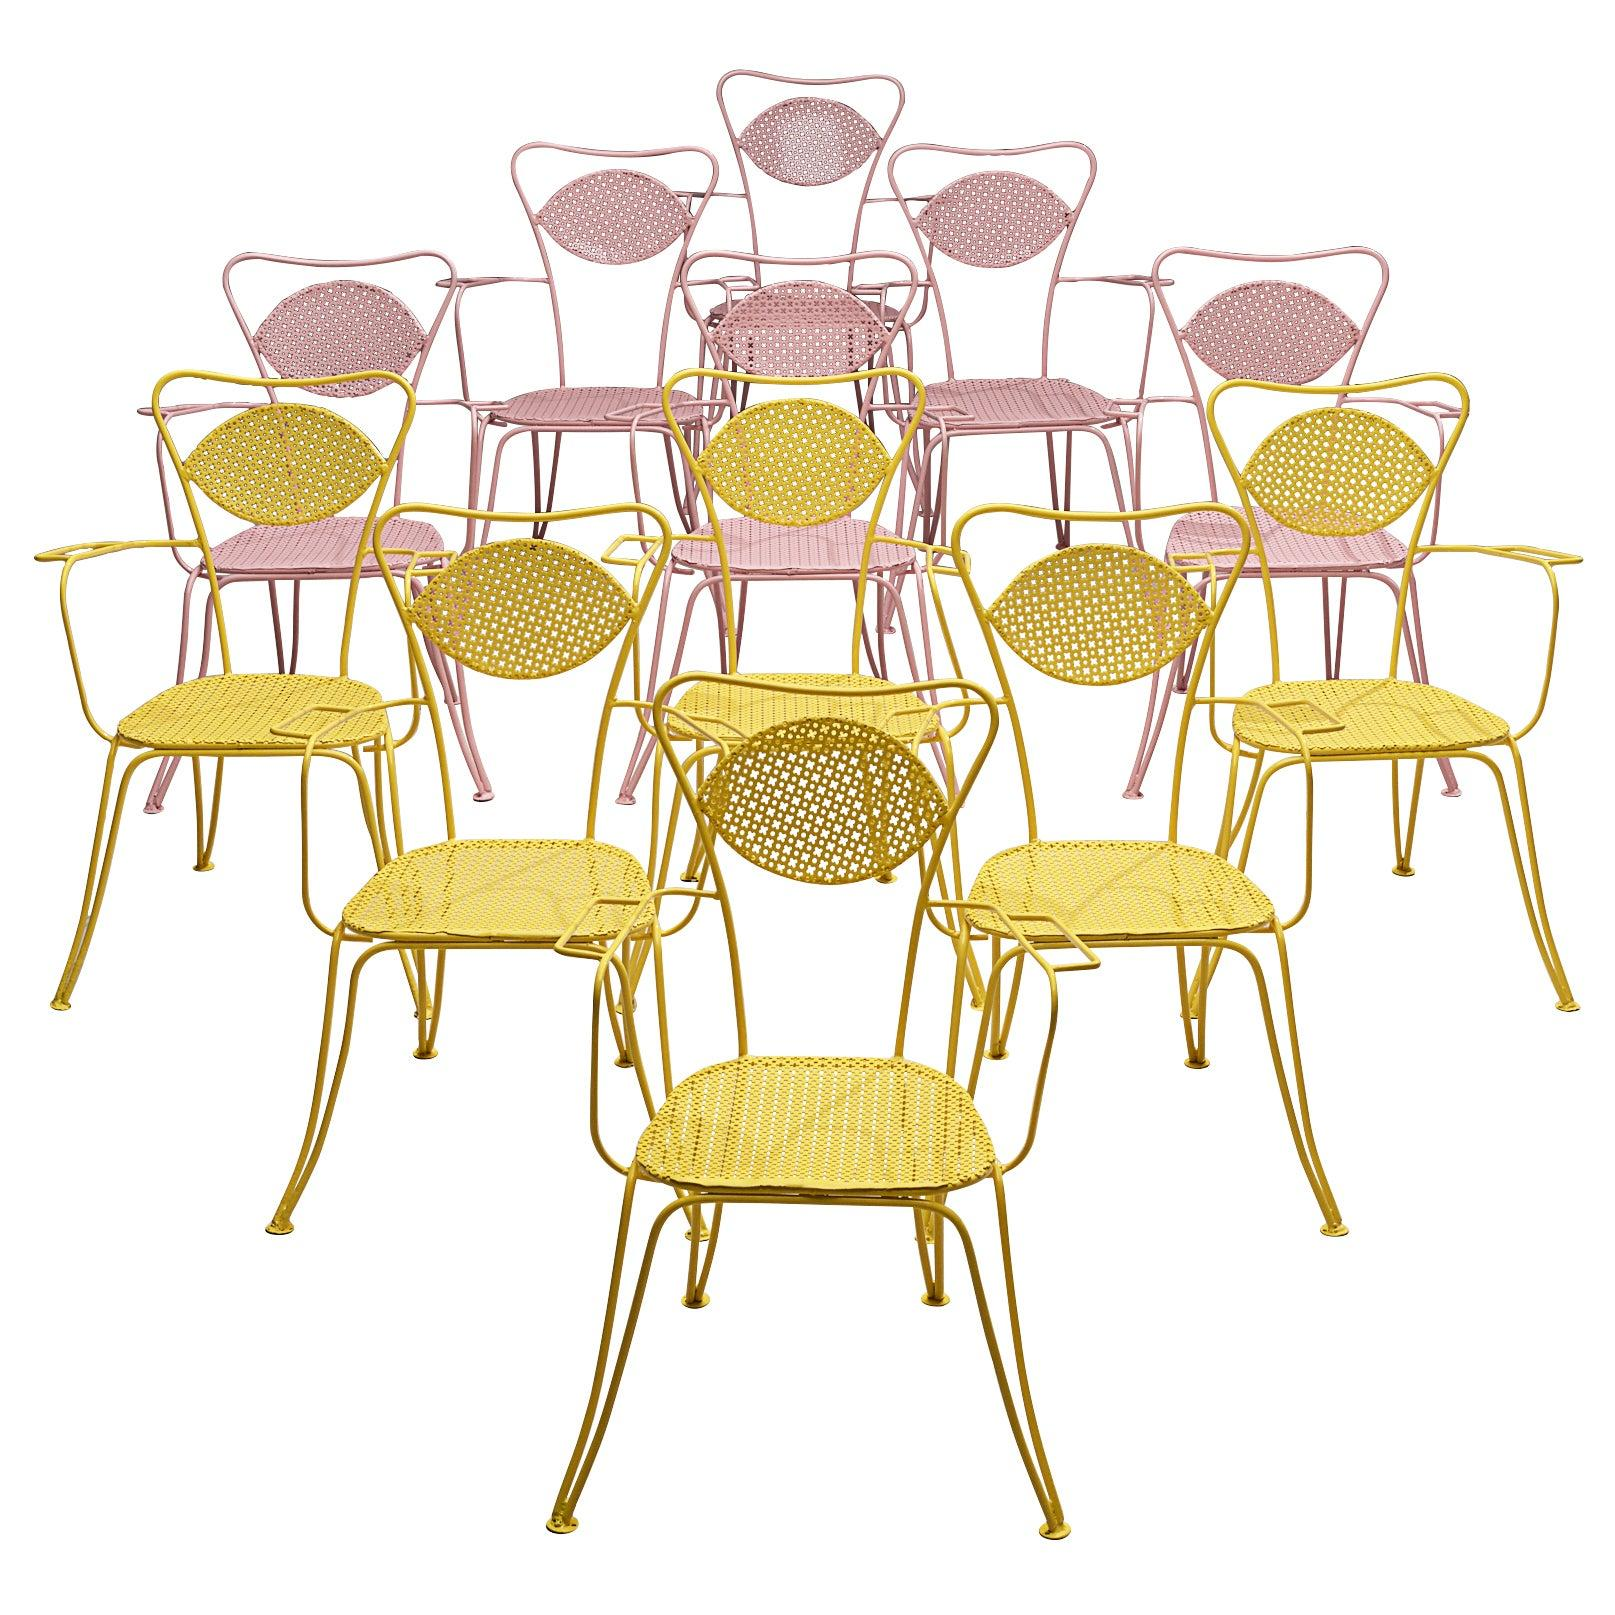 Italian Dining Chairs in Colorful Lacquered Metal